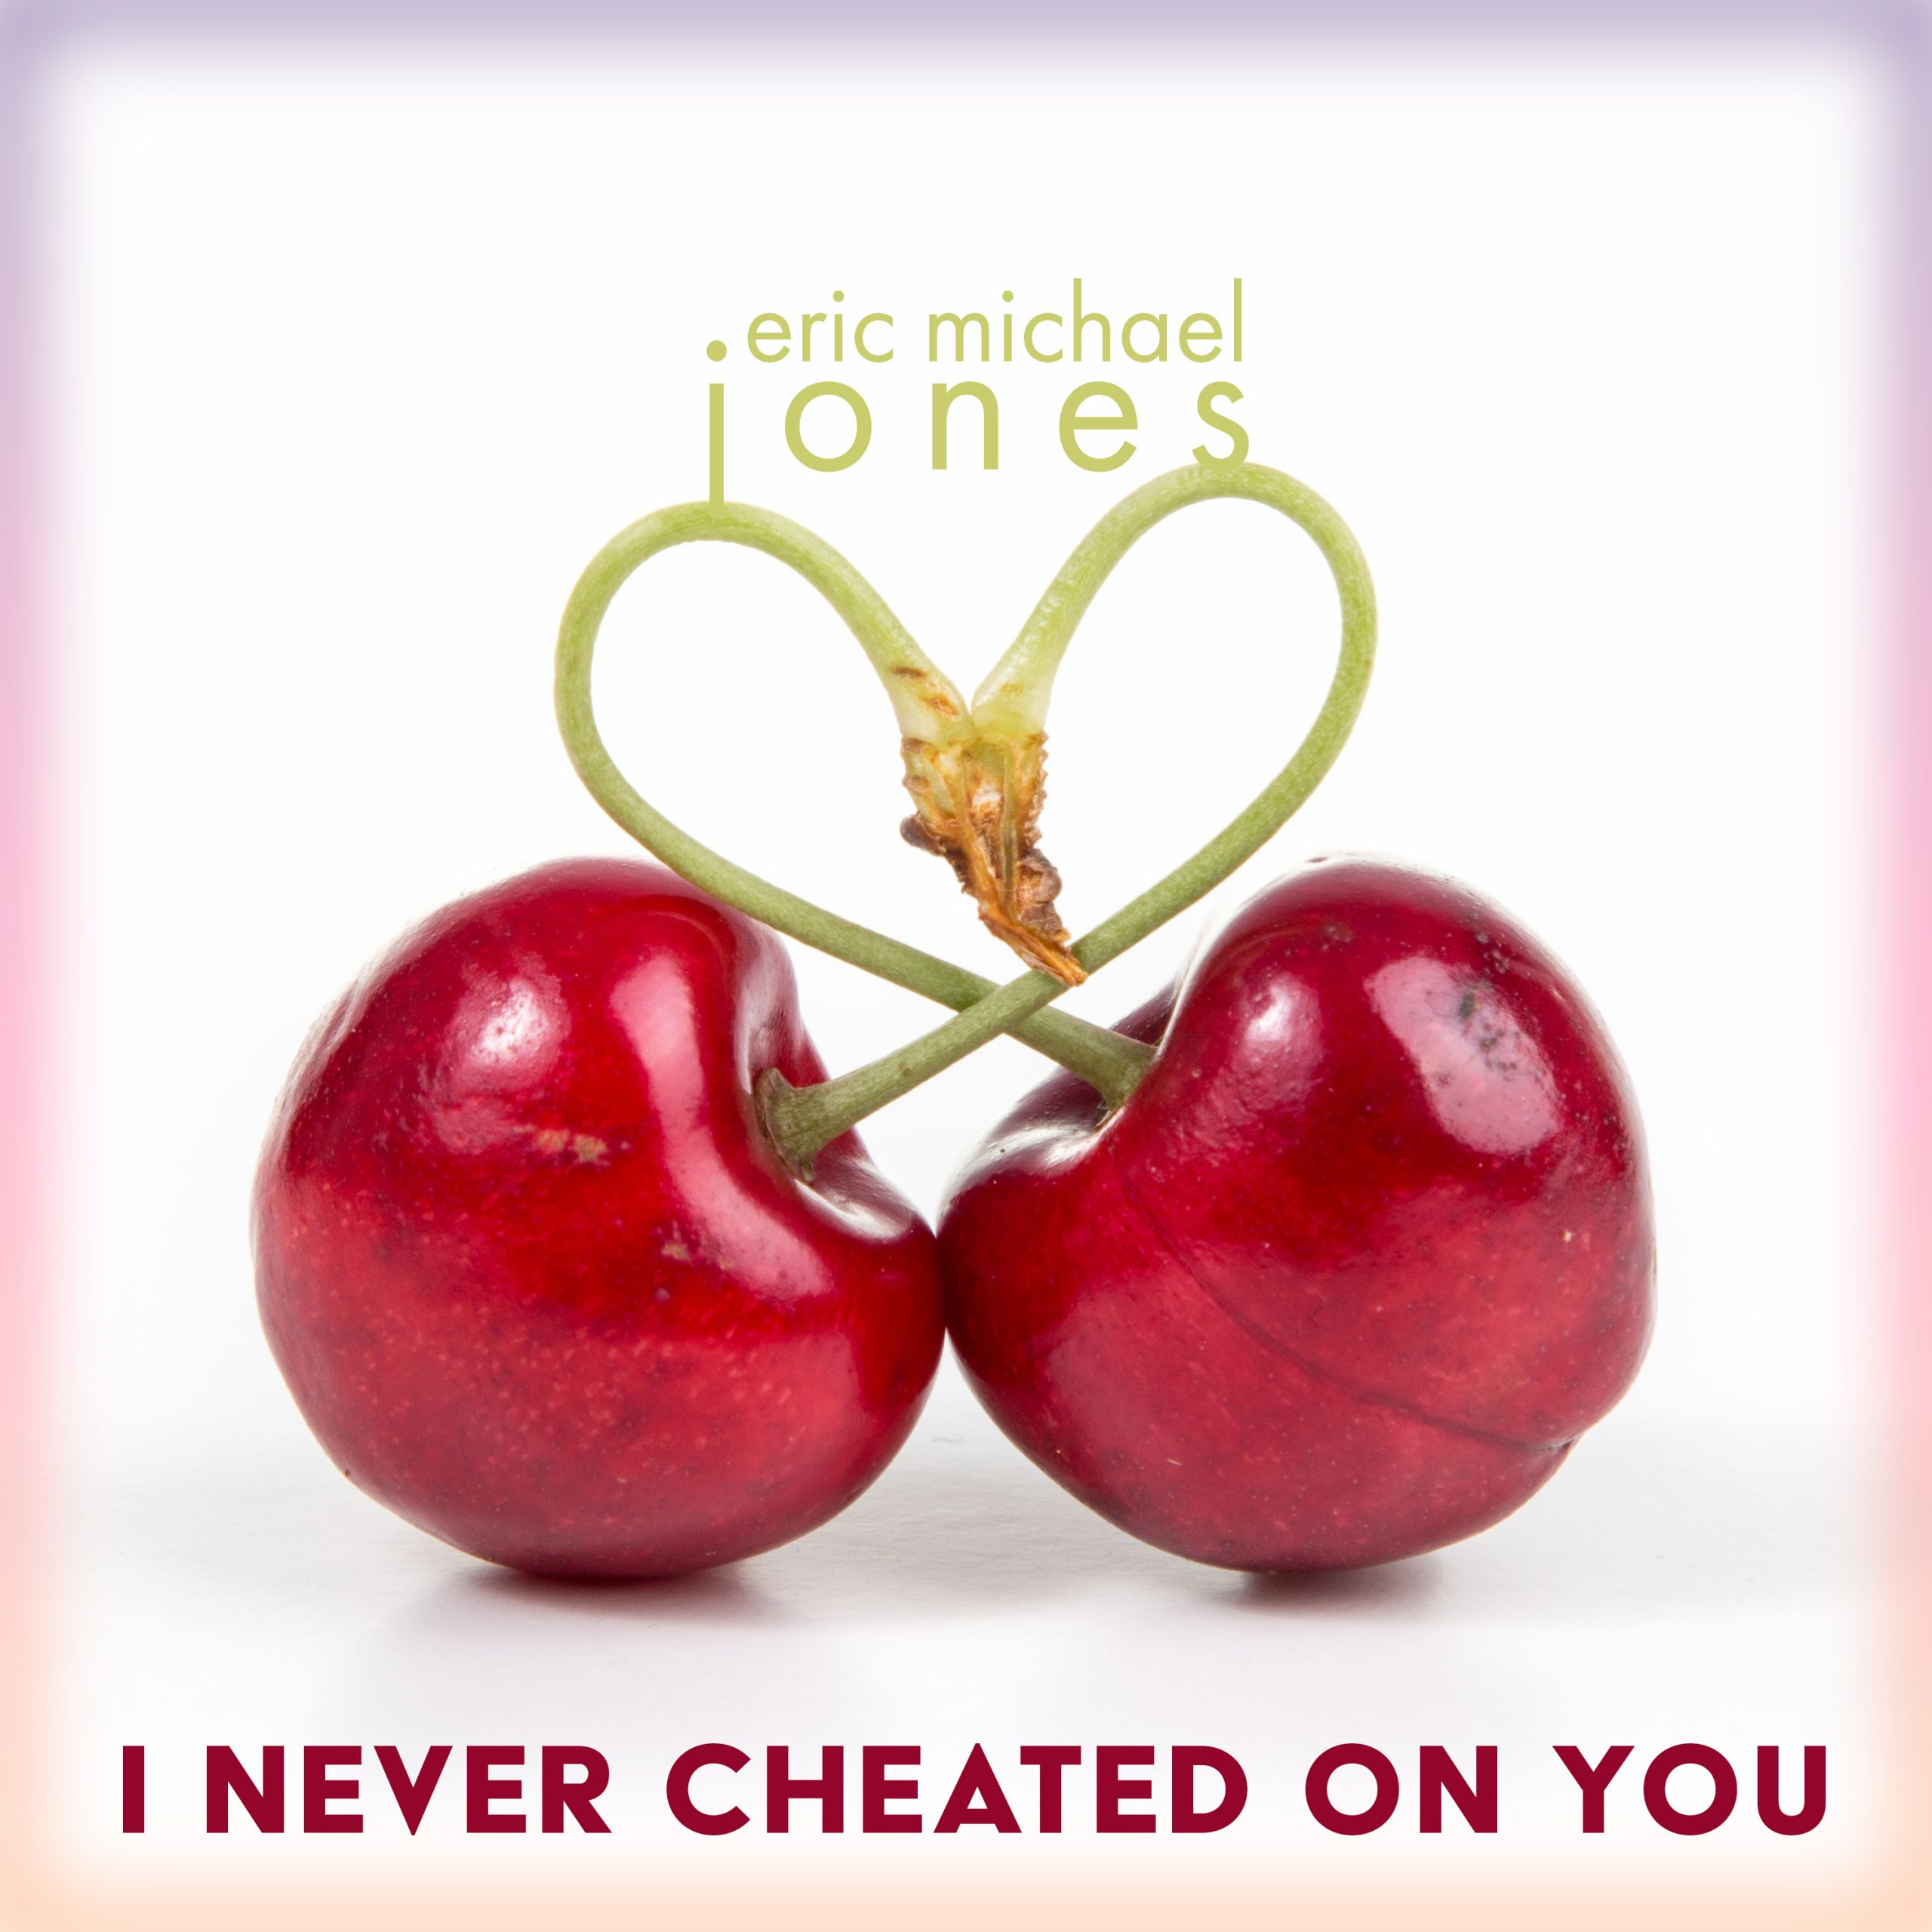 Cover art for the song I Never Cheated On You, shows two cherries with stems forming a heart